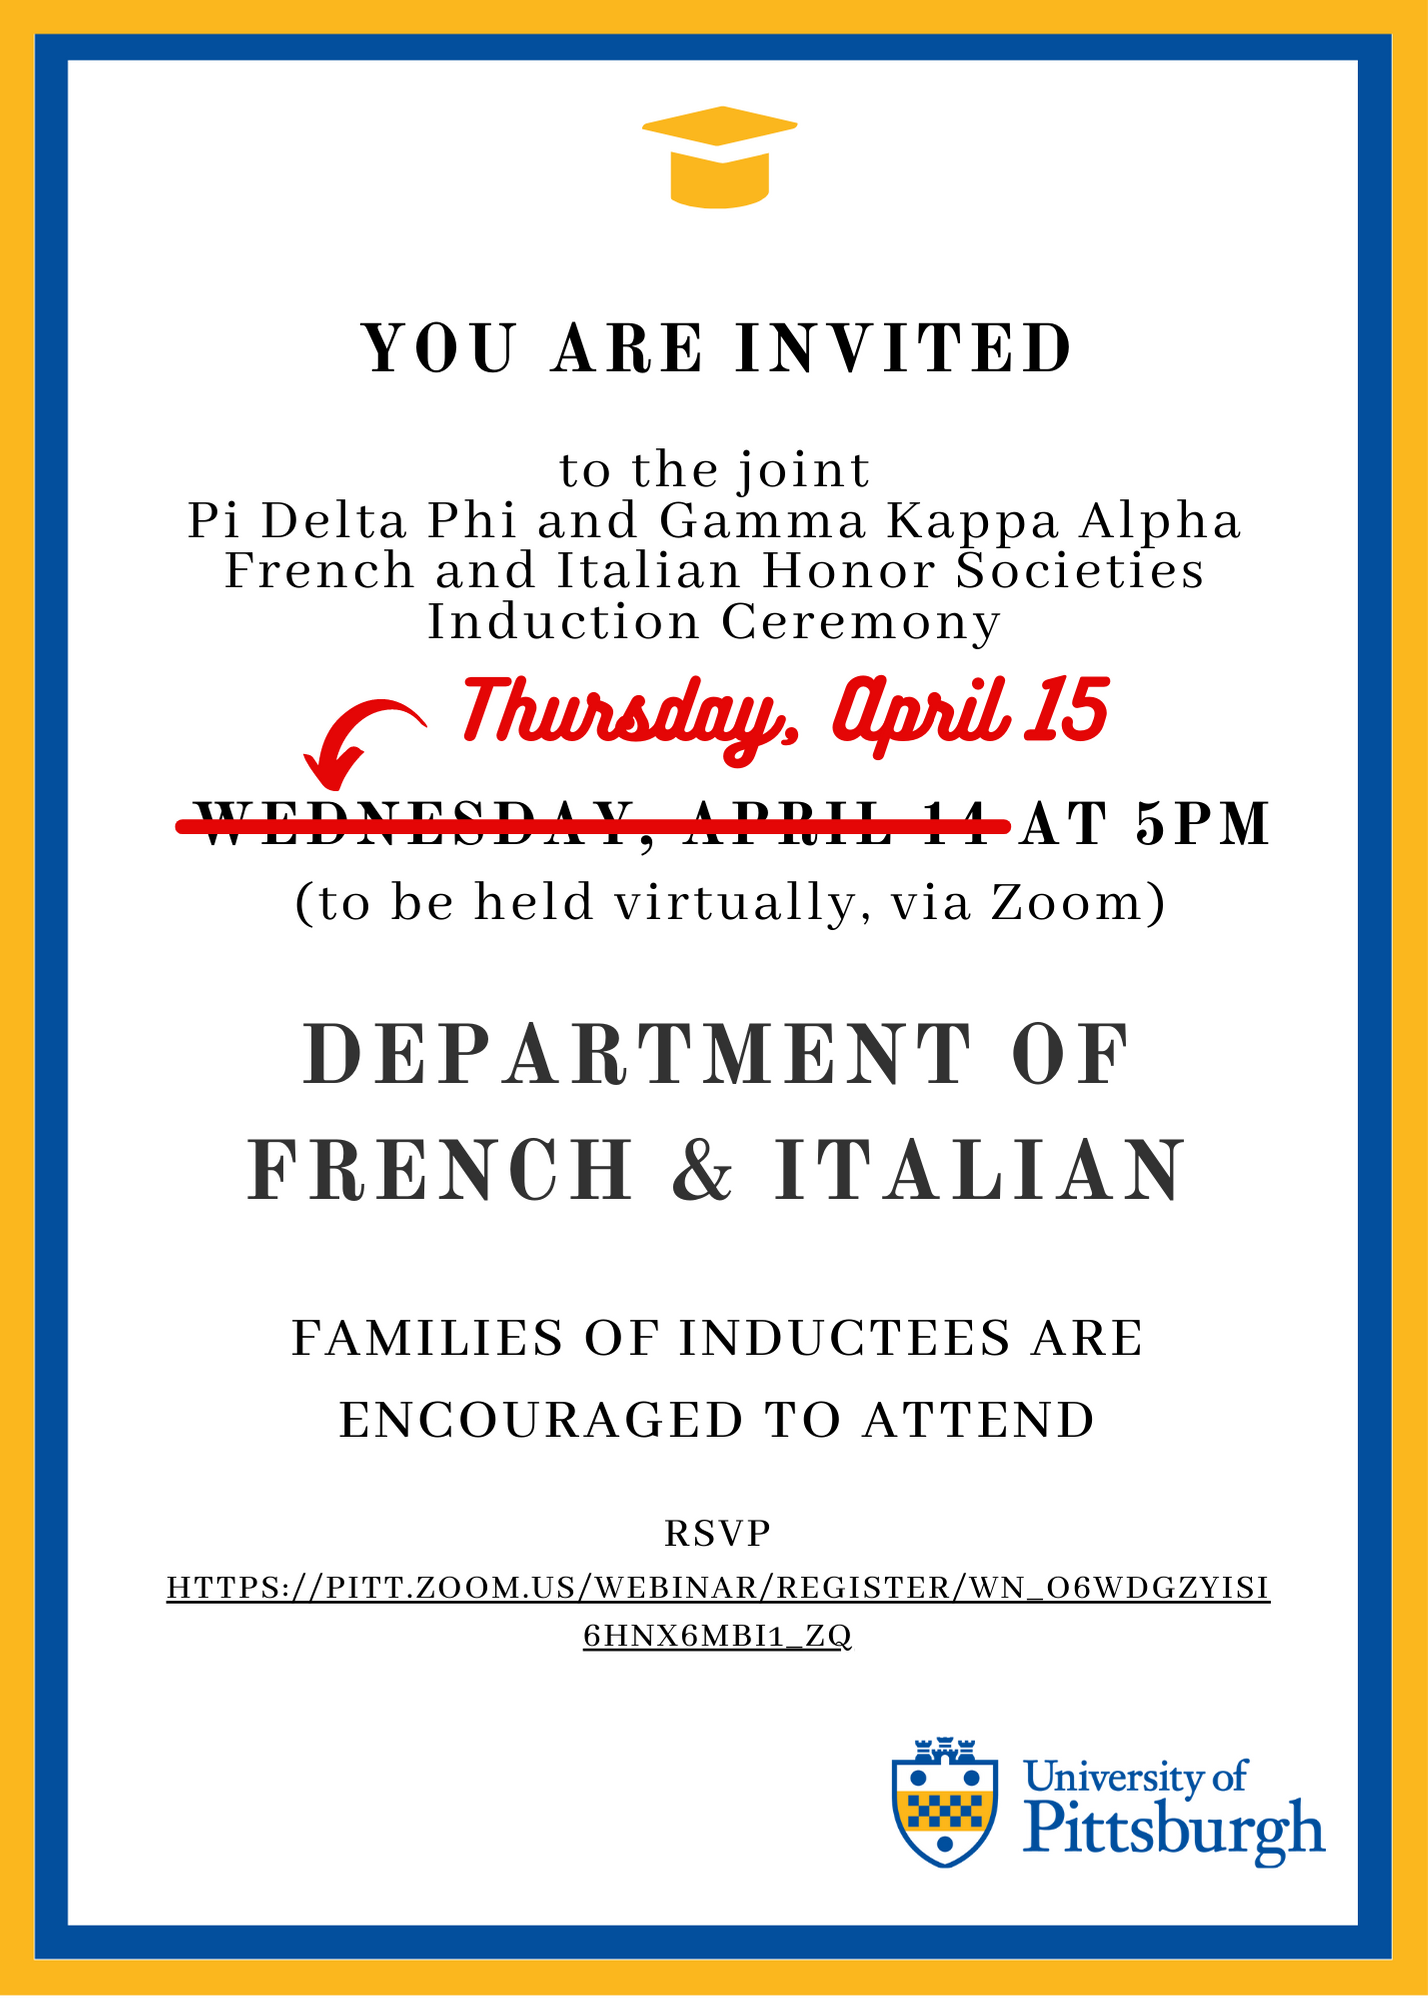 FRIT Induction ceremony April 15 at 5pm; black text on white background with a yellow and blue border and a graduate cap image that is also yellow; the incorrect date was orginially on the flyer, so there is a corrective red text crossing out the incorrect information. Accessible flyer is attached.